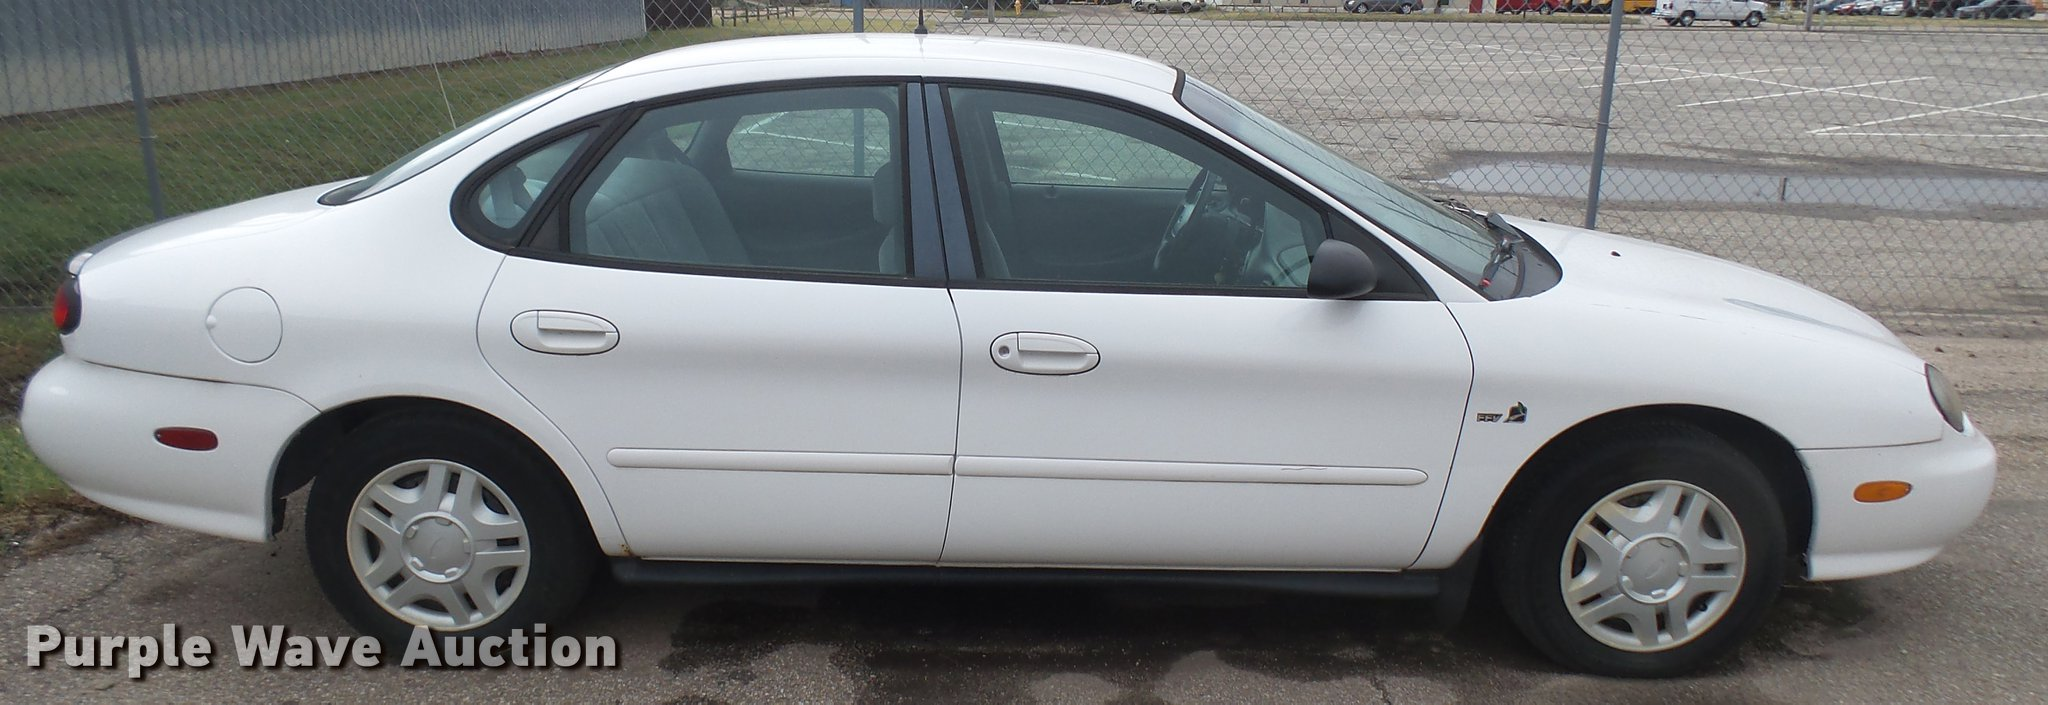 1999 ford taurus lx full size in new window